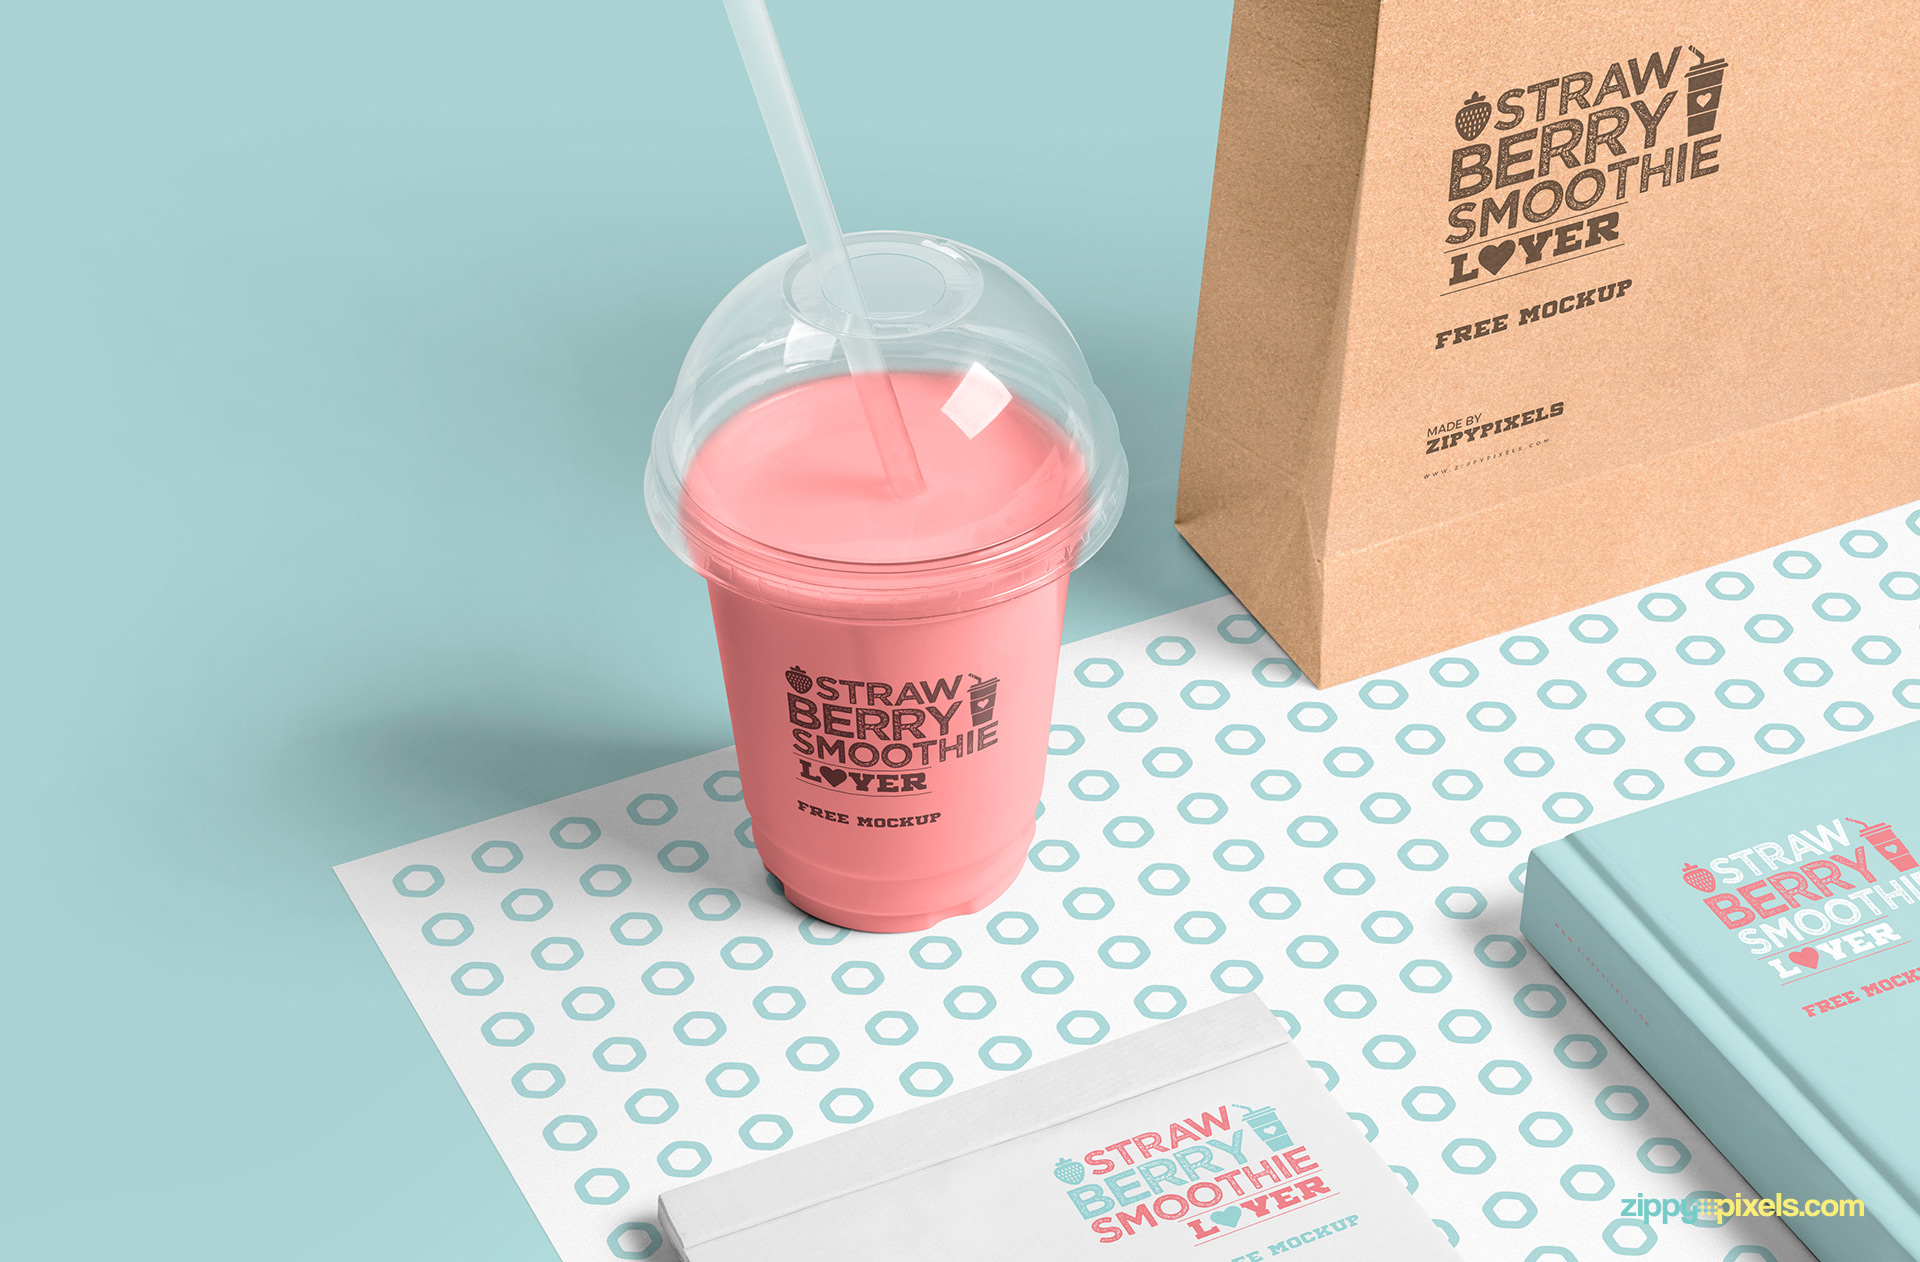 Free plastic cup mockup scene includes transparent cup, book, notepad and shopping bag.